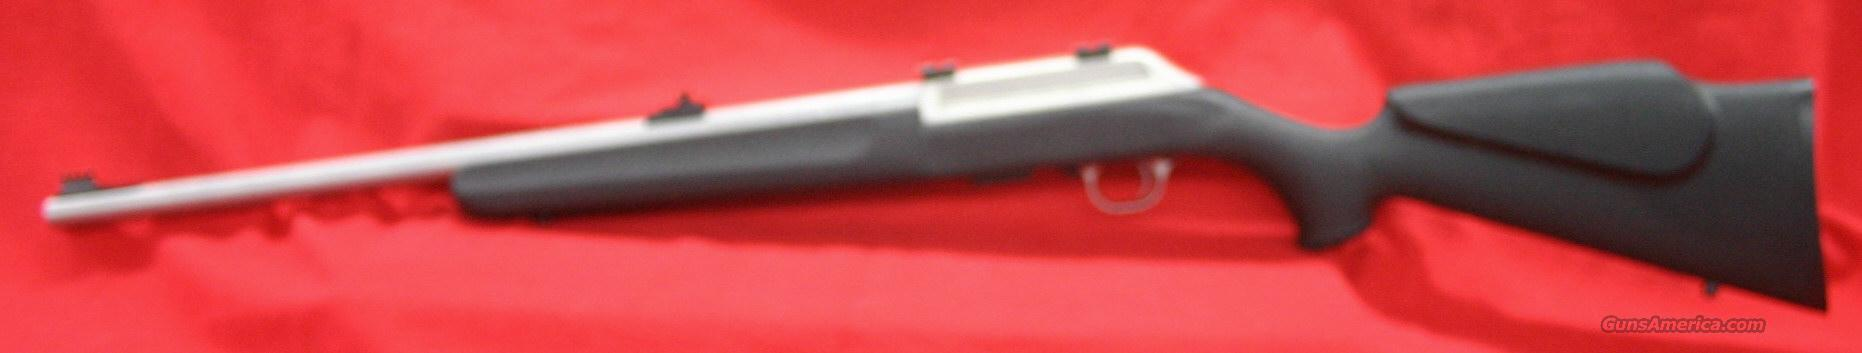 T/C R-55 All Weather 22lr  Guns > Rifles > Thompson Subguns/Semi-Auto